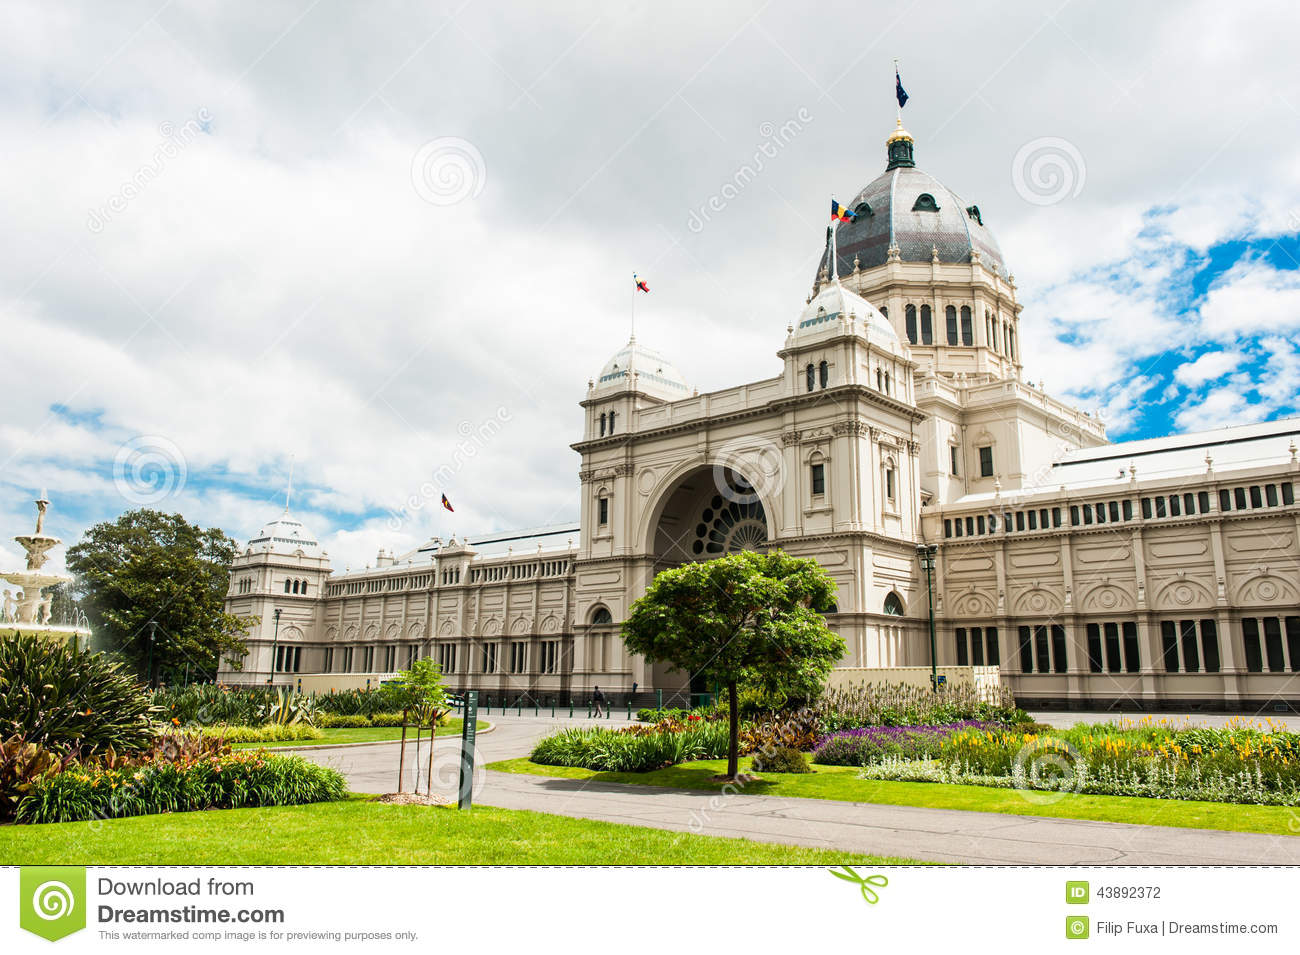 Royal exhibition building stock photo image of - What time does victoria gardens close ...